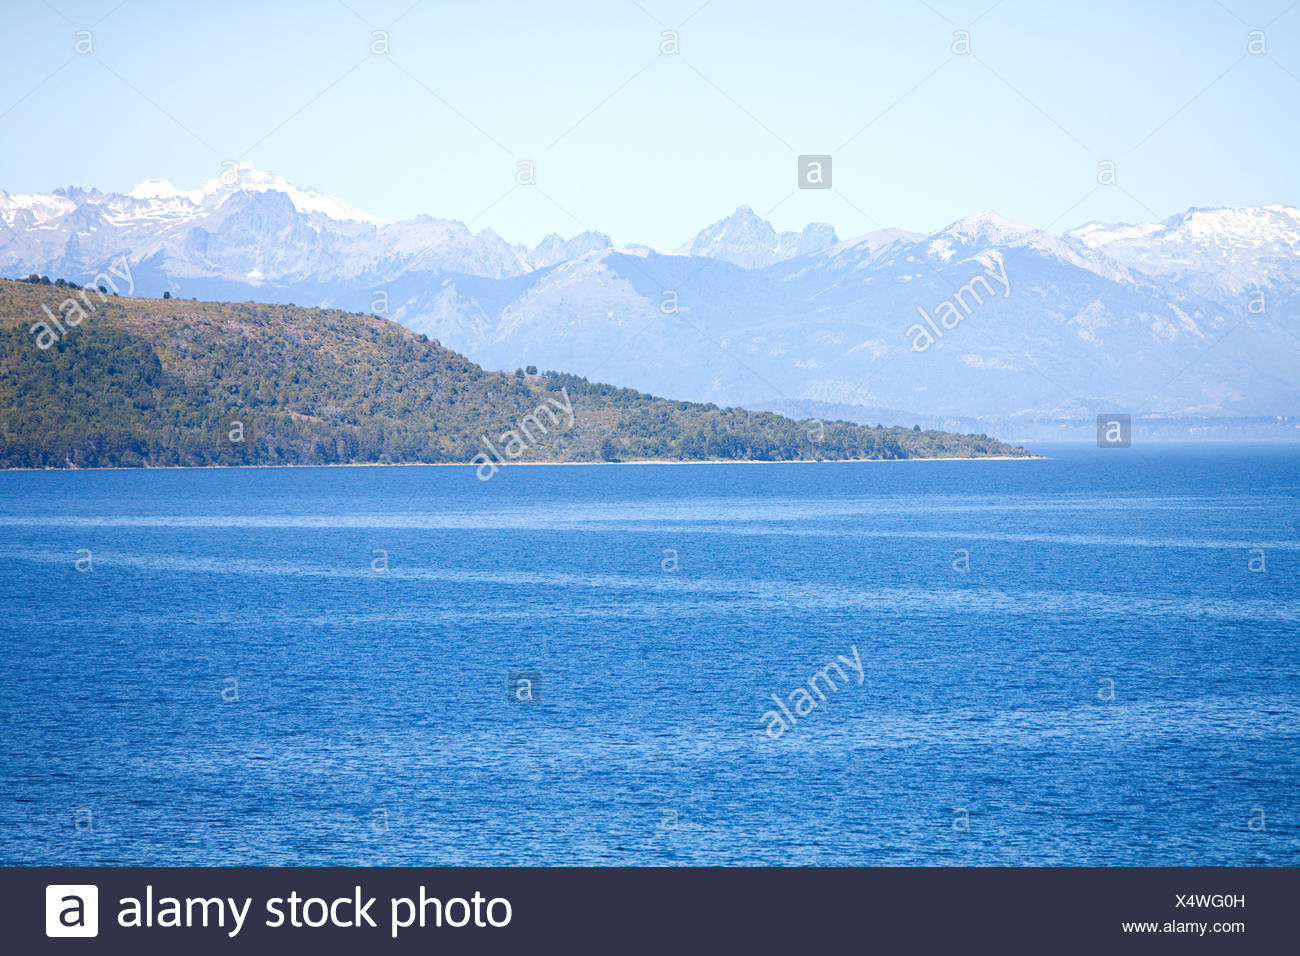 Lake and mountains in argentina - Stock Image